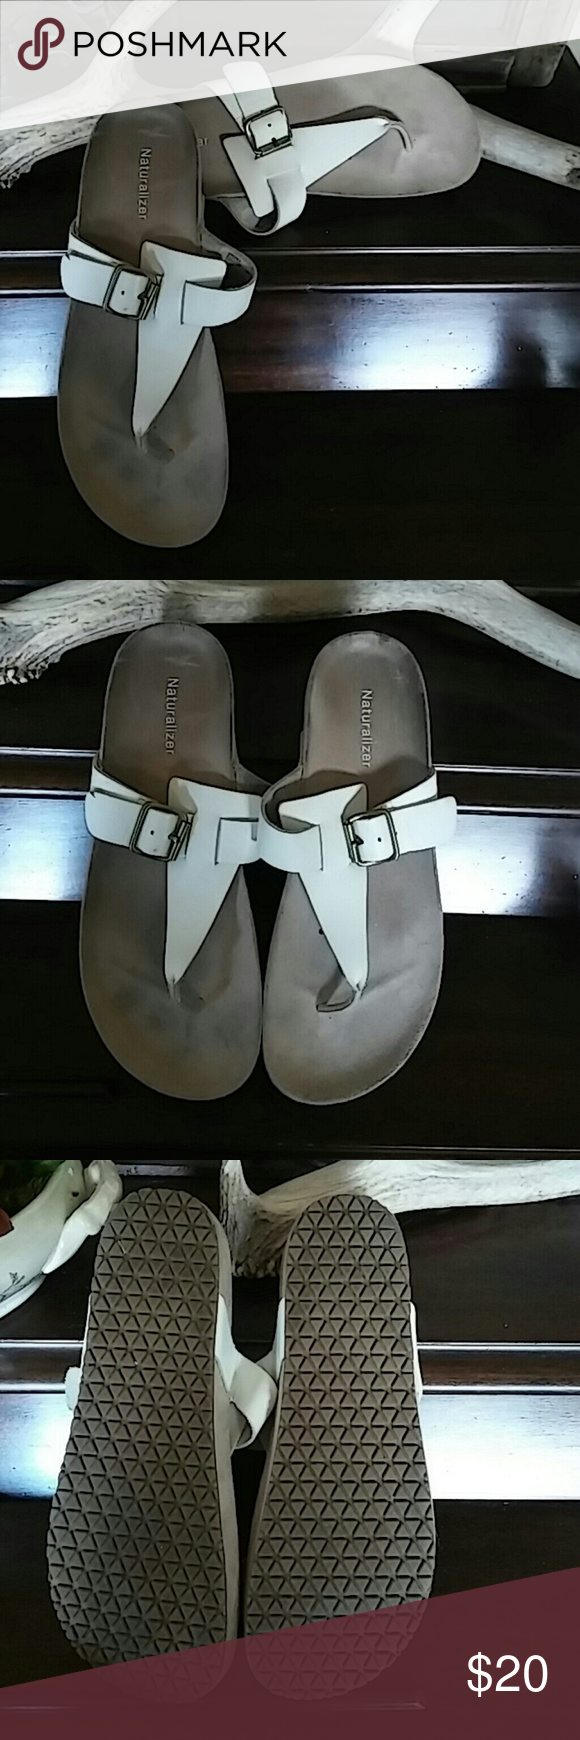 Nauralizer white sandals Excellent condition size 9 white Naturalizer sandals. Smoke free home. Worn maybe one time. Naturalizer Shoes Sandals